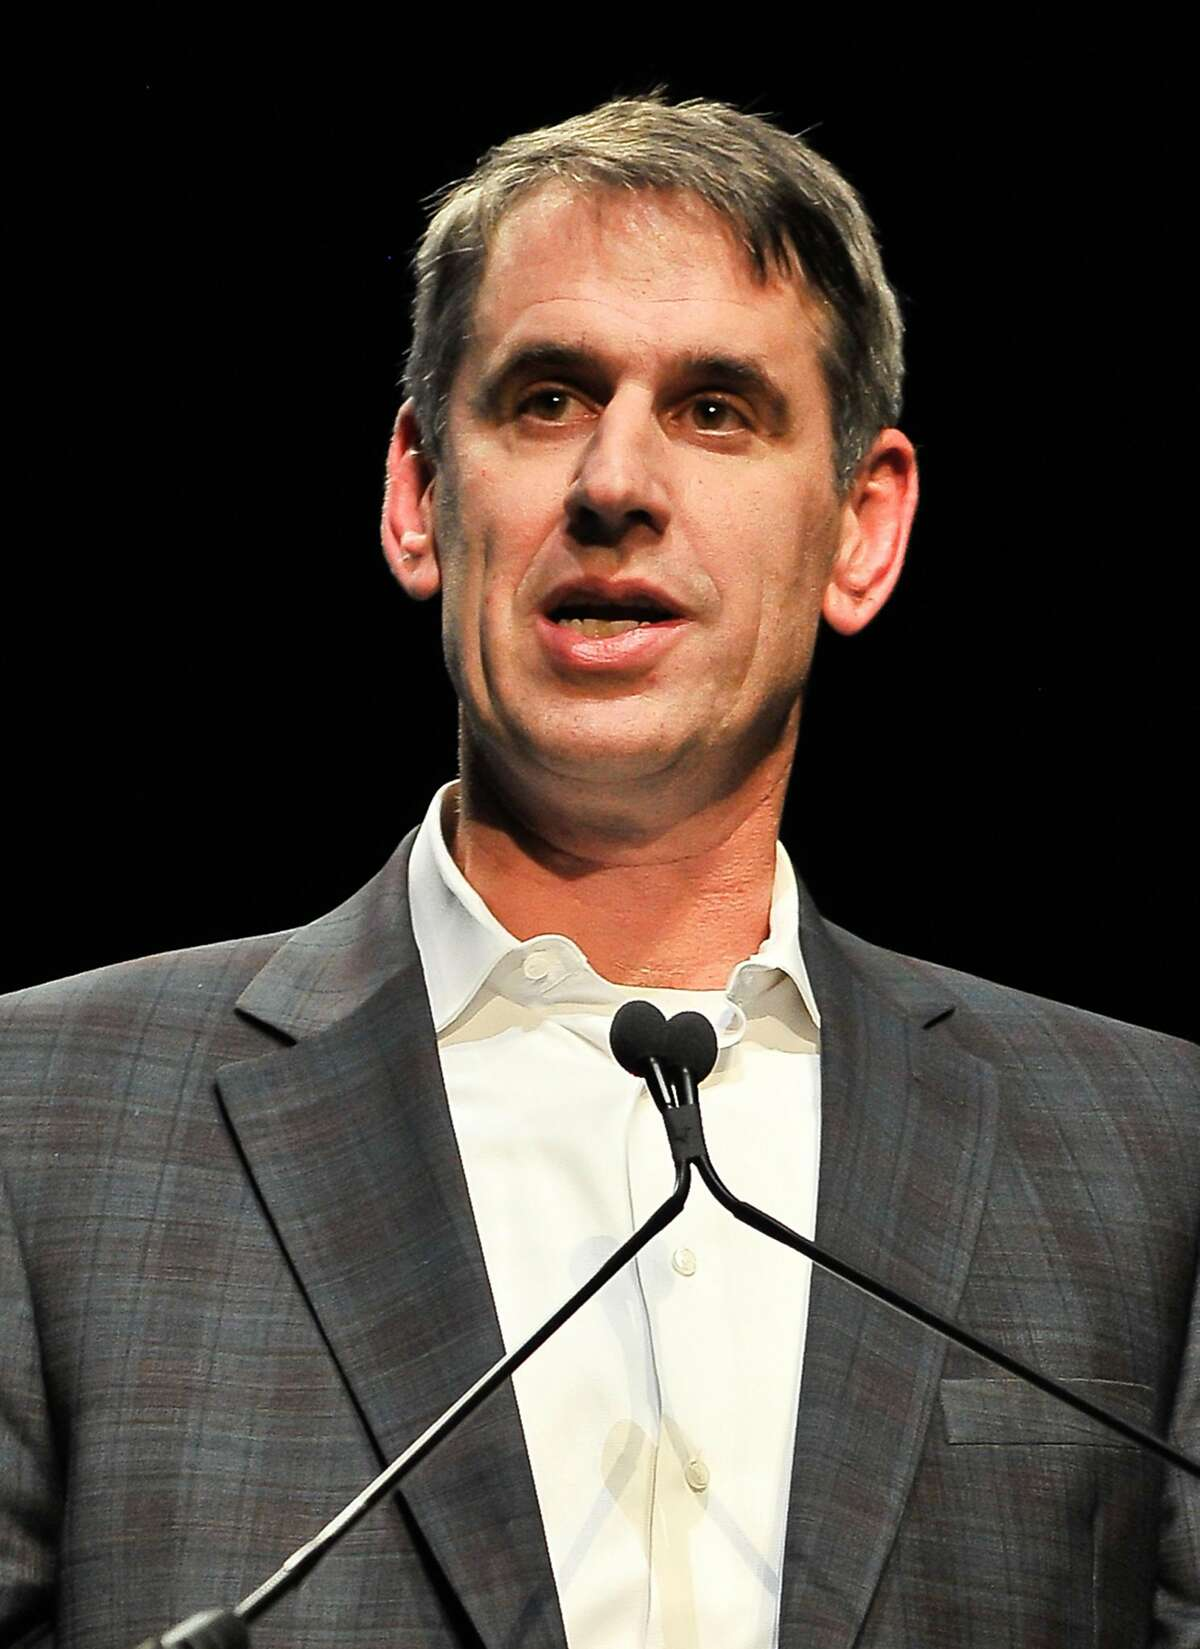 Bill Gurley, general partner at Benchmark, wins the 2016 VC of the Year award at the TechCrunch 9th Annual Crunchies Awards at the War Memorial Opera House in San Francisco.